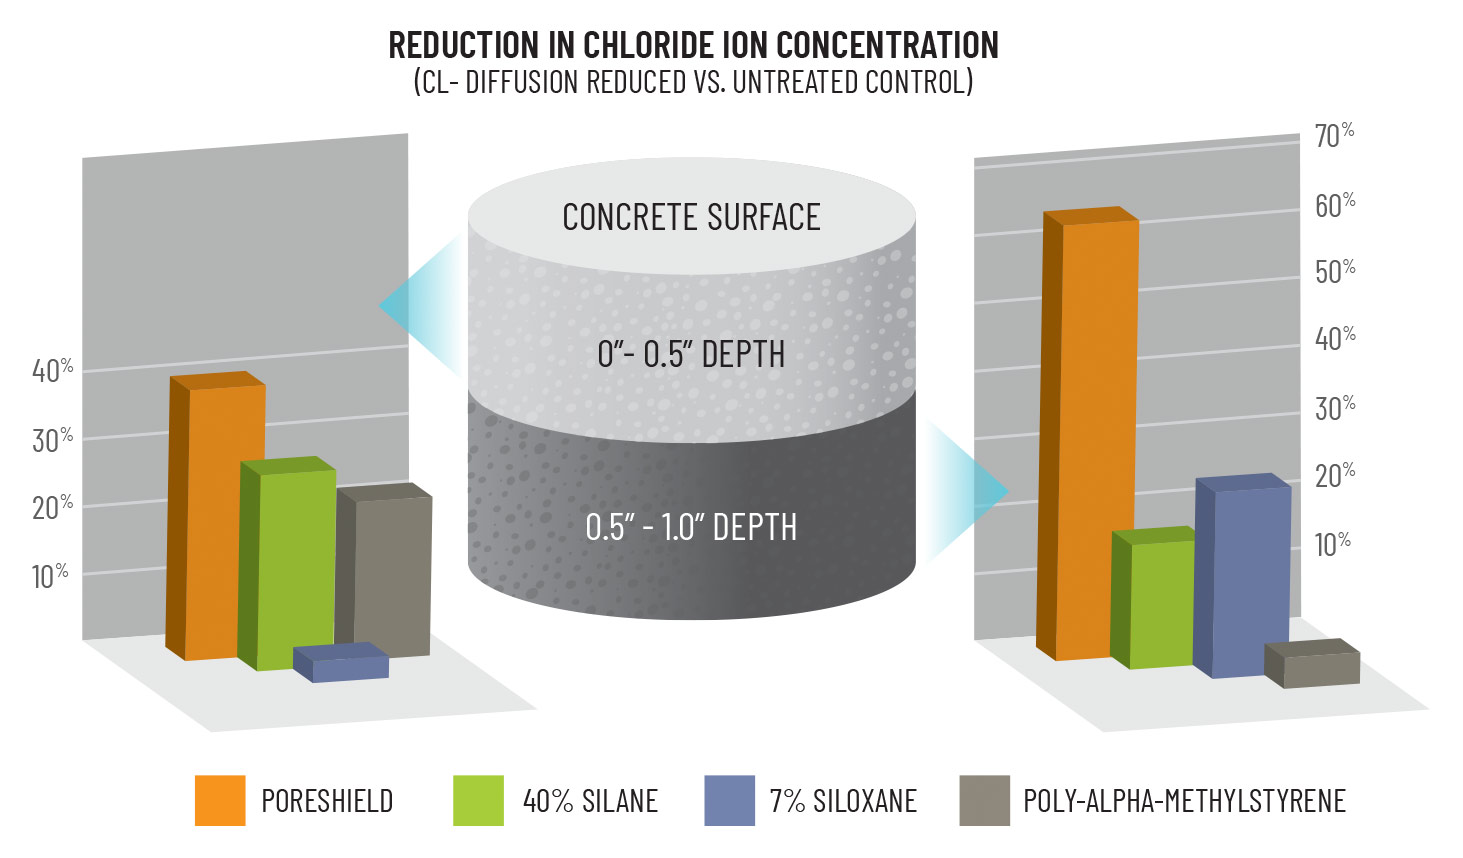 Reduction in chloride ion concentration